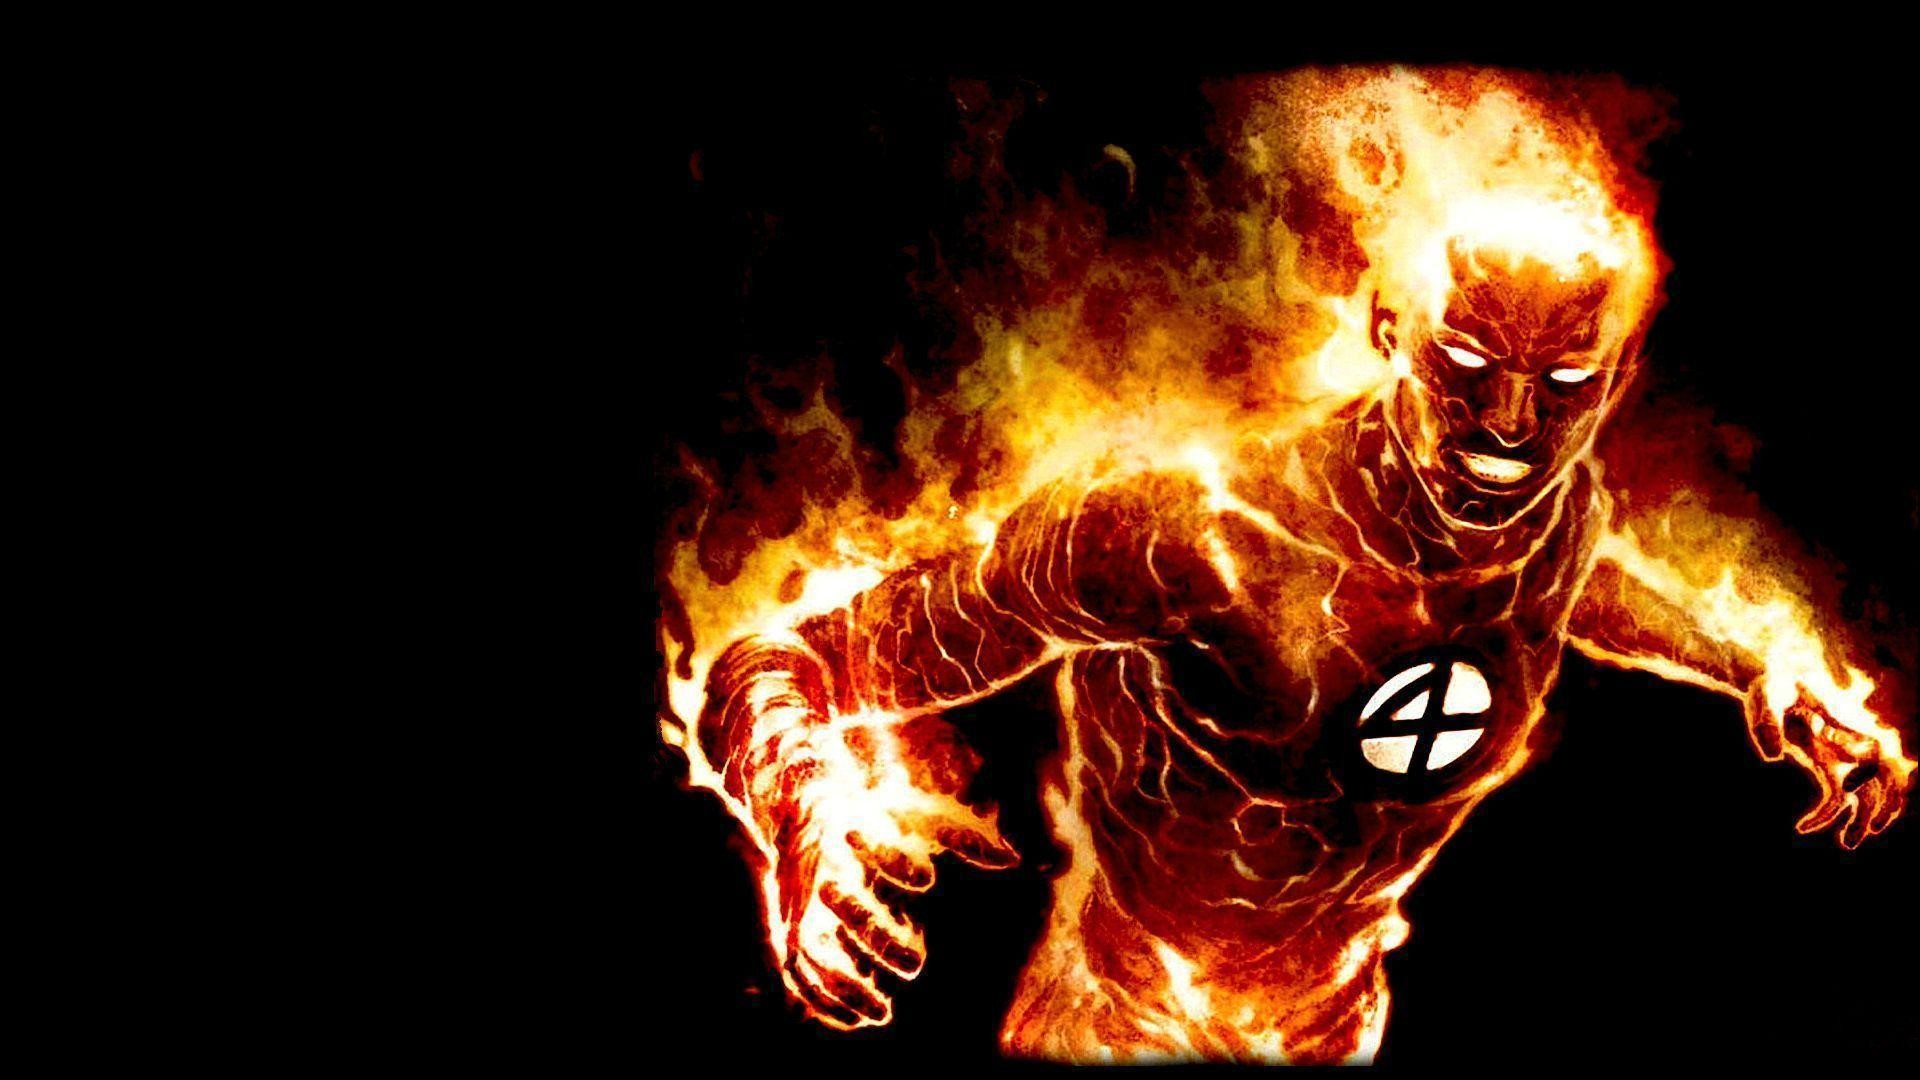 63 Human Torch Wallpapers on WallpaperPlay 1920x1080